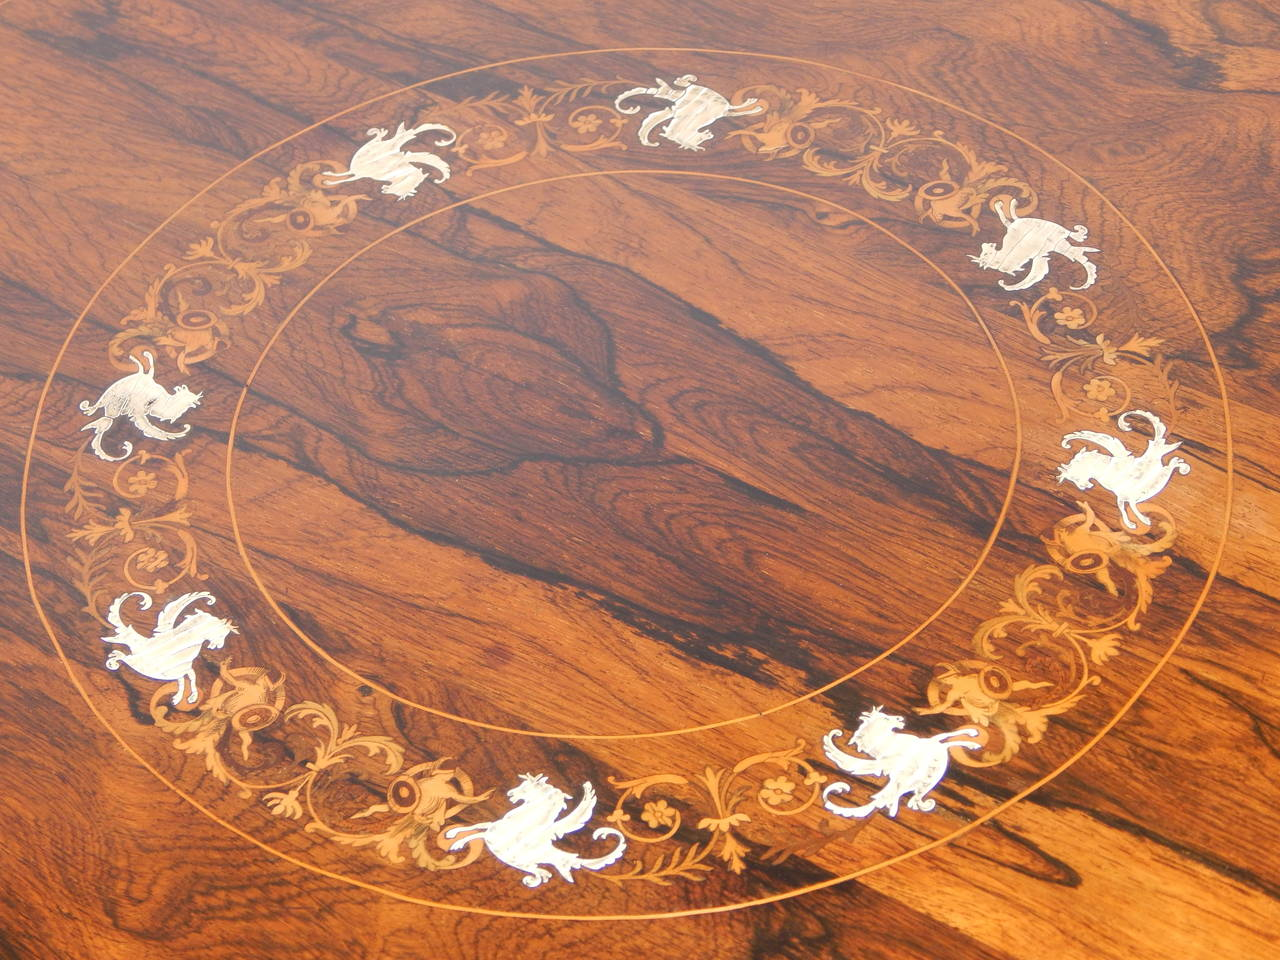 Attirant Inlay English Edwardian Inlaid Rosewood Side Table For Sale